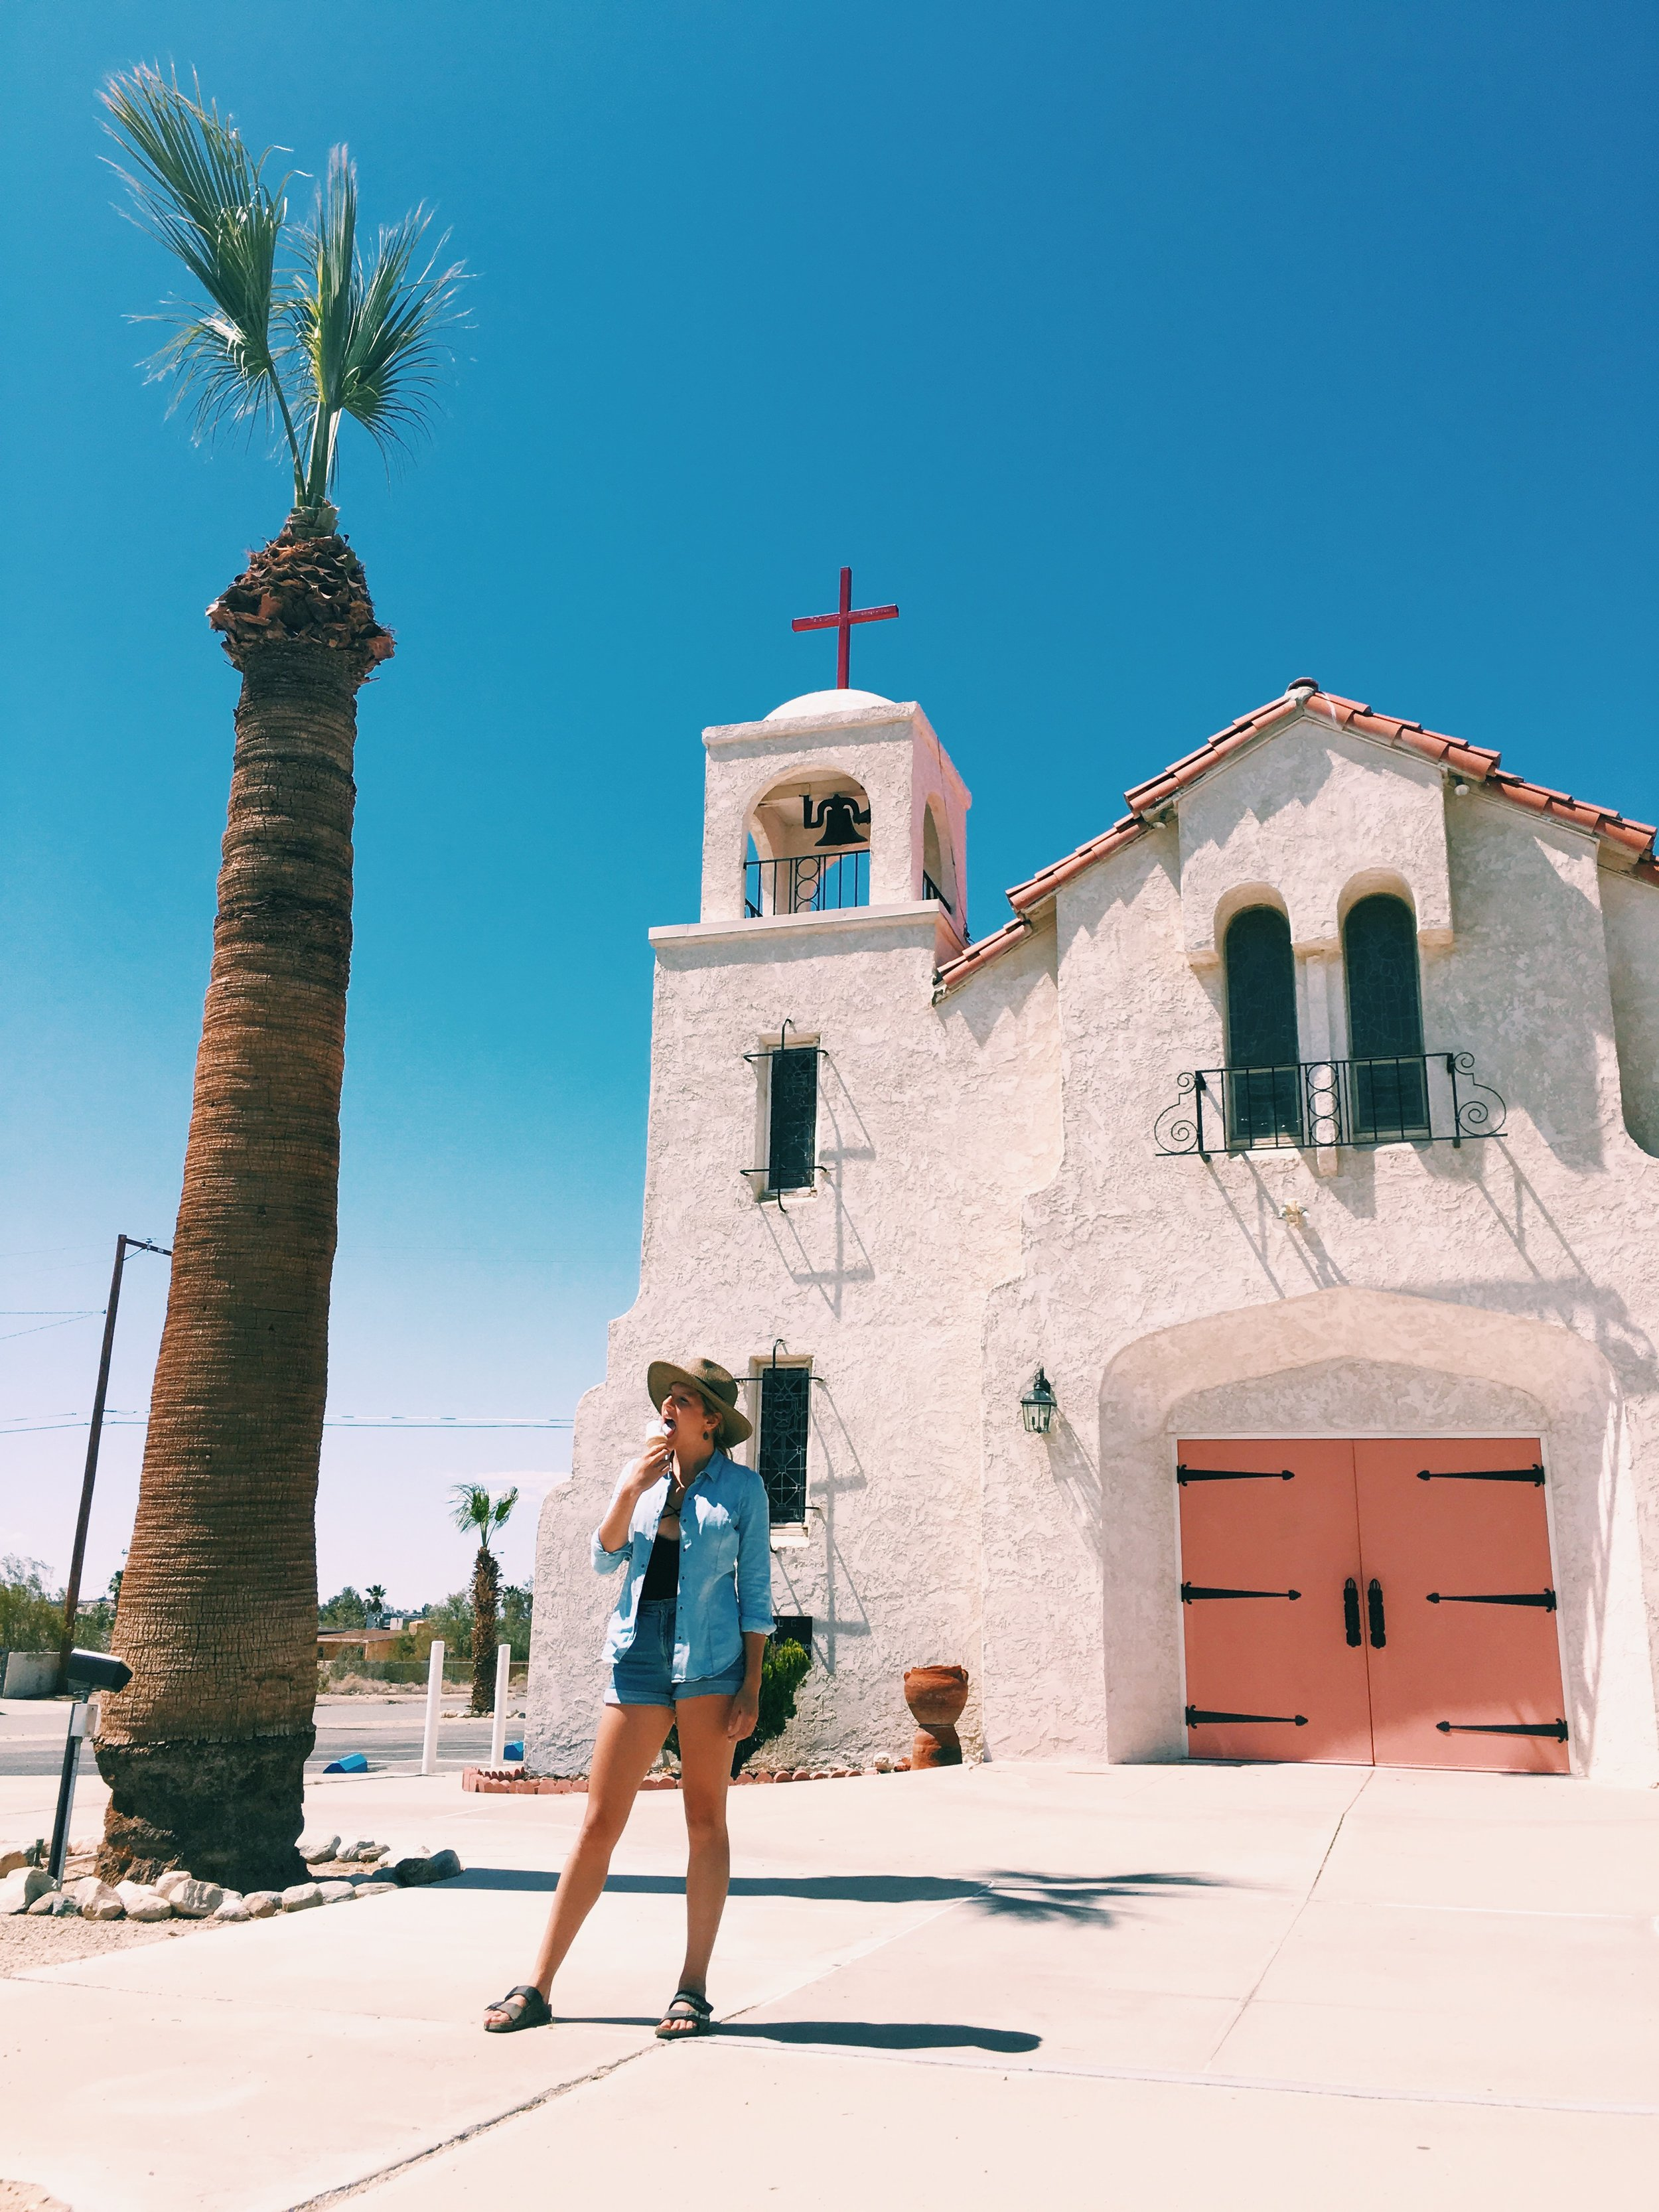 twentynine-palms-church